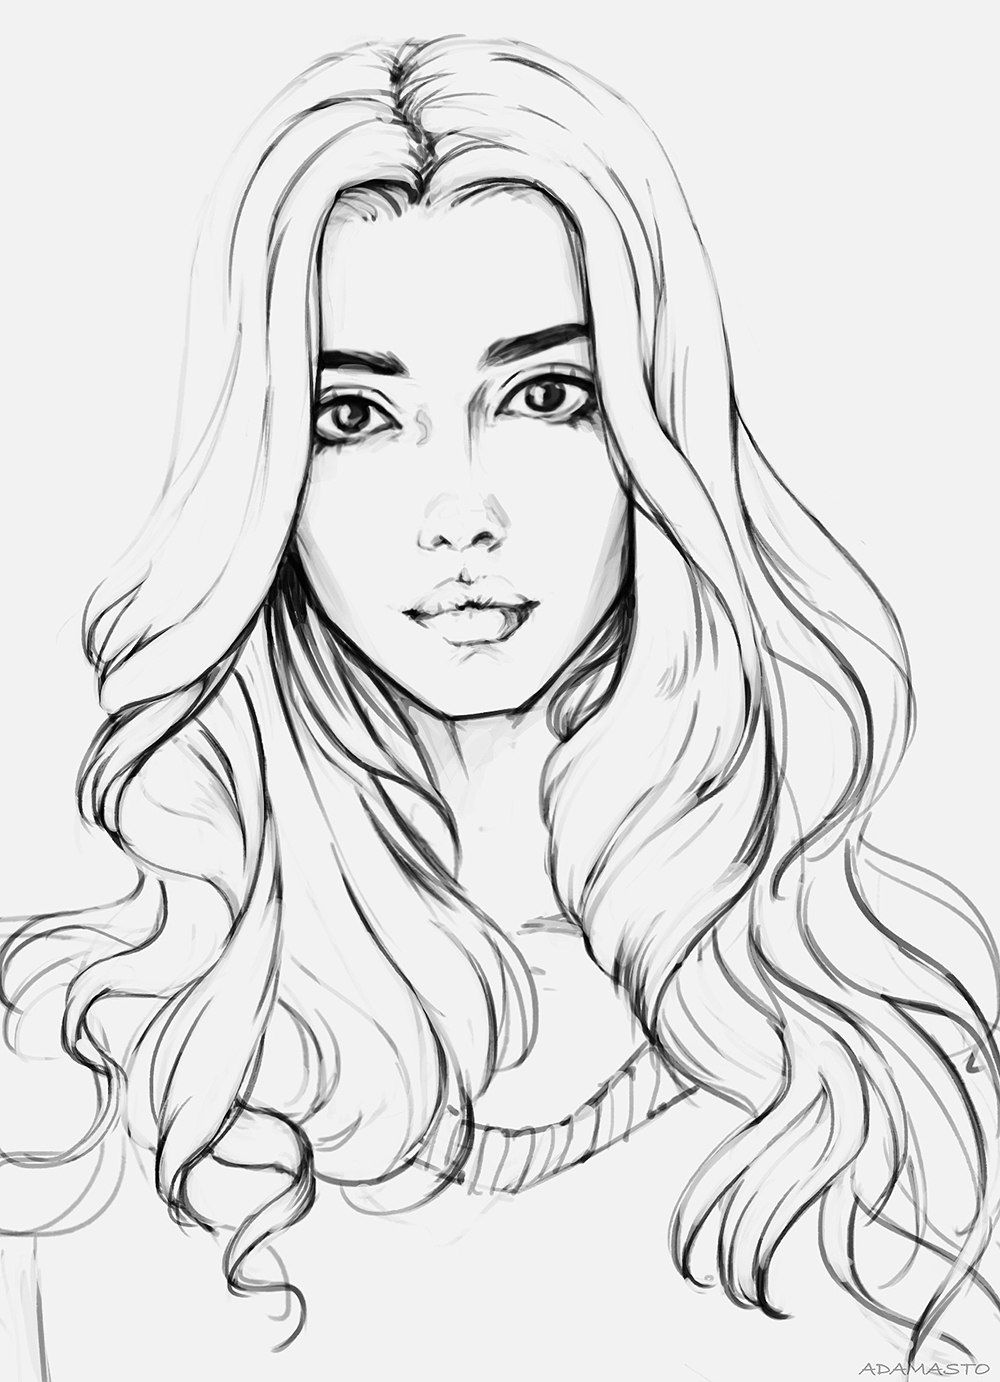 Coloring pages of girls realistic